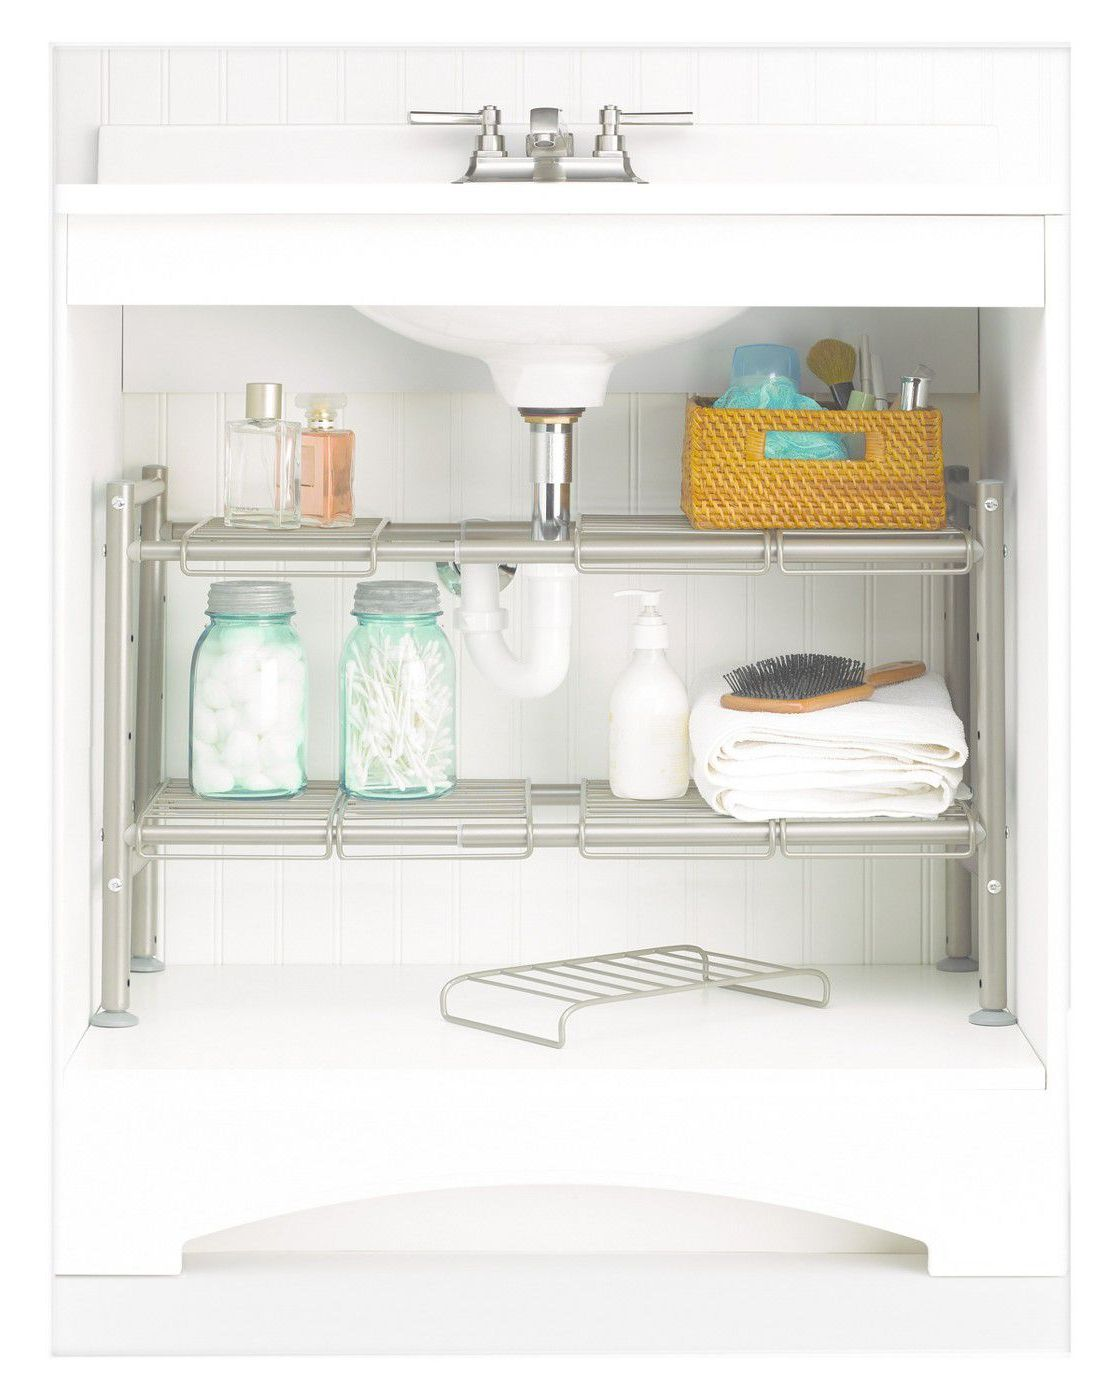 10 Under Sink Organizers For Bathrooms And Kitchens Easy Under